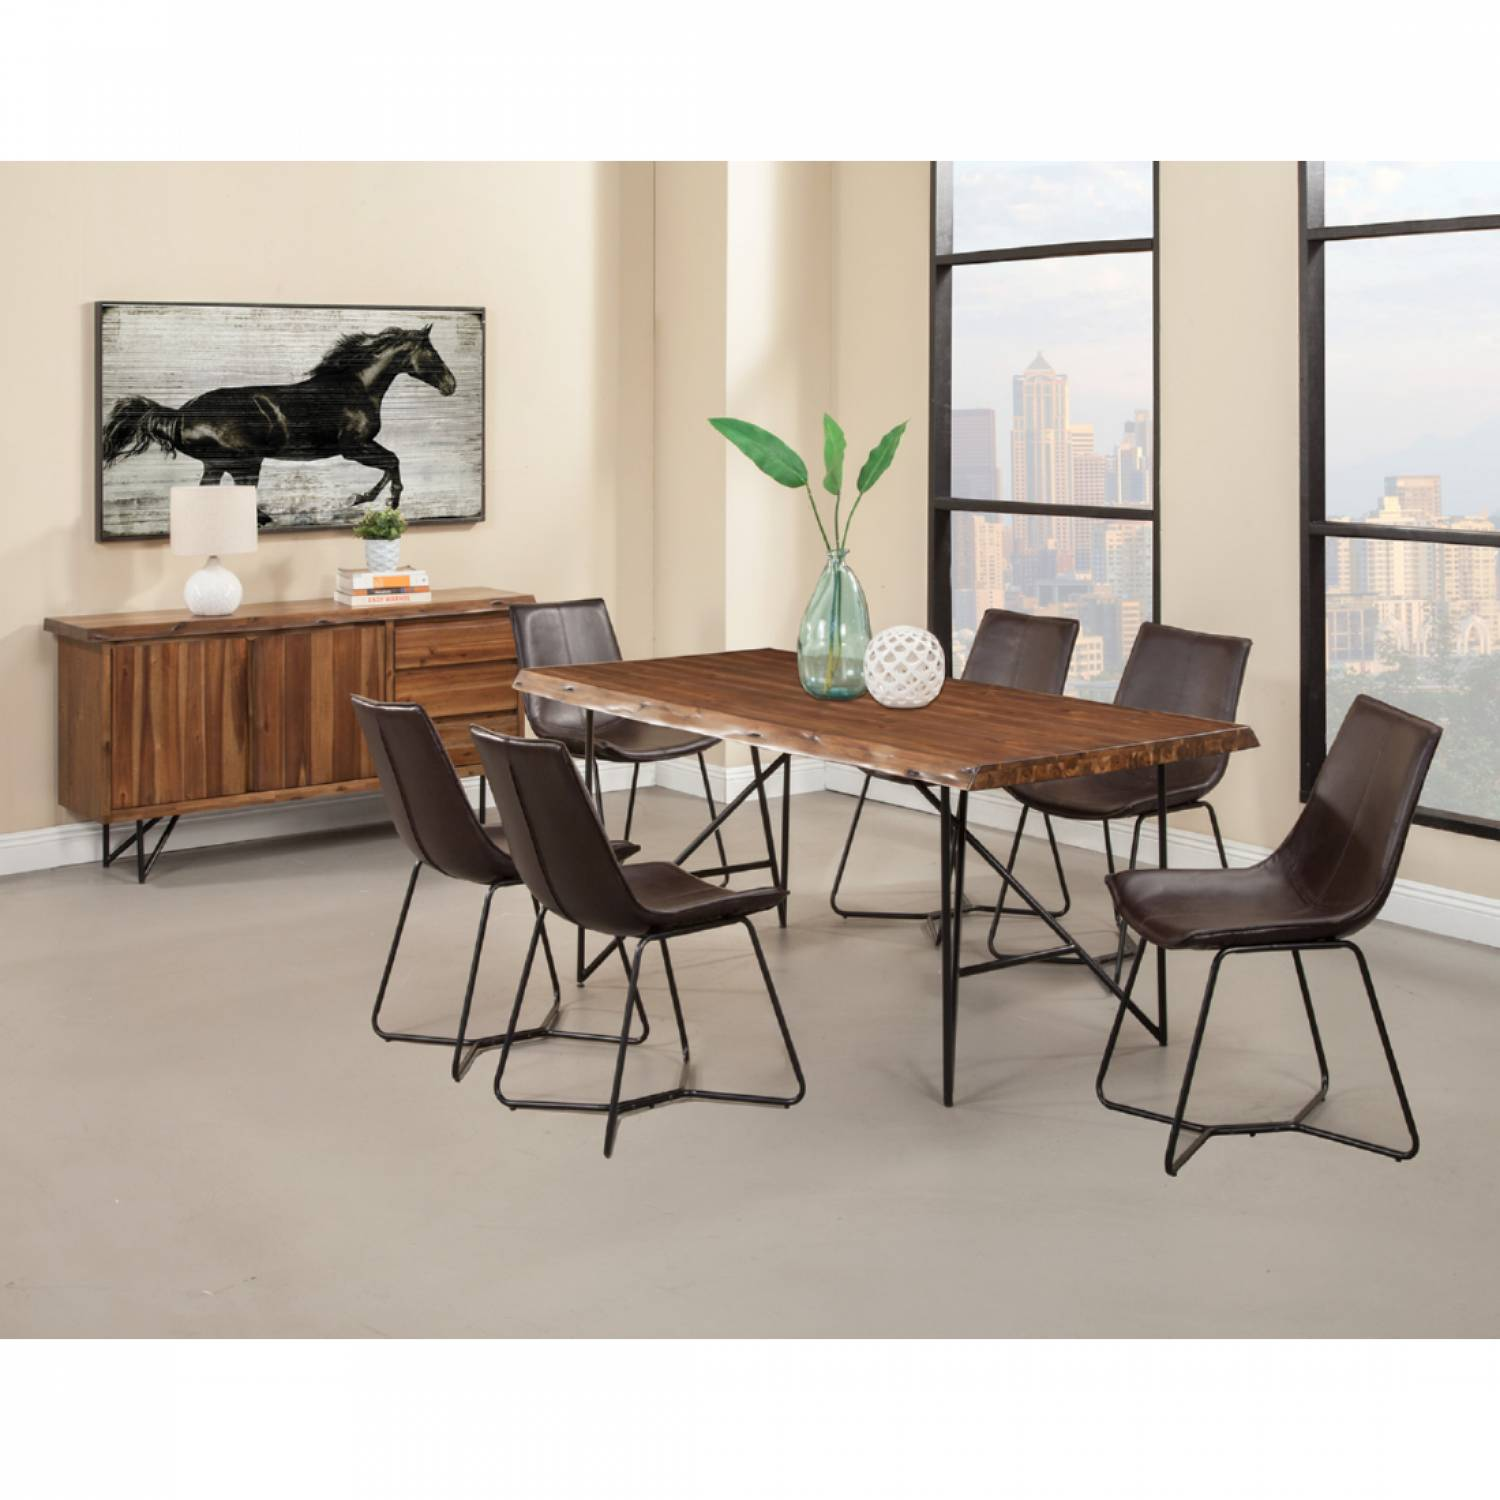 Super 1968 Alpine Furniture 1968 01 Live Edge 7Pc Sets Dining Table 6 Dining Chair Dark Brown Short Links Chair Design For Home Short Linksinfo